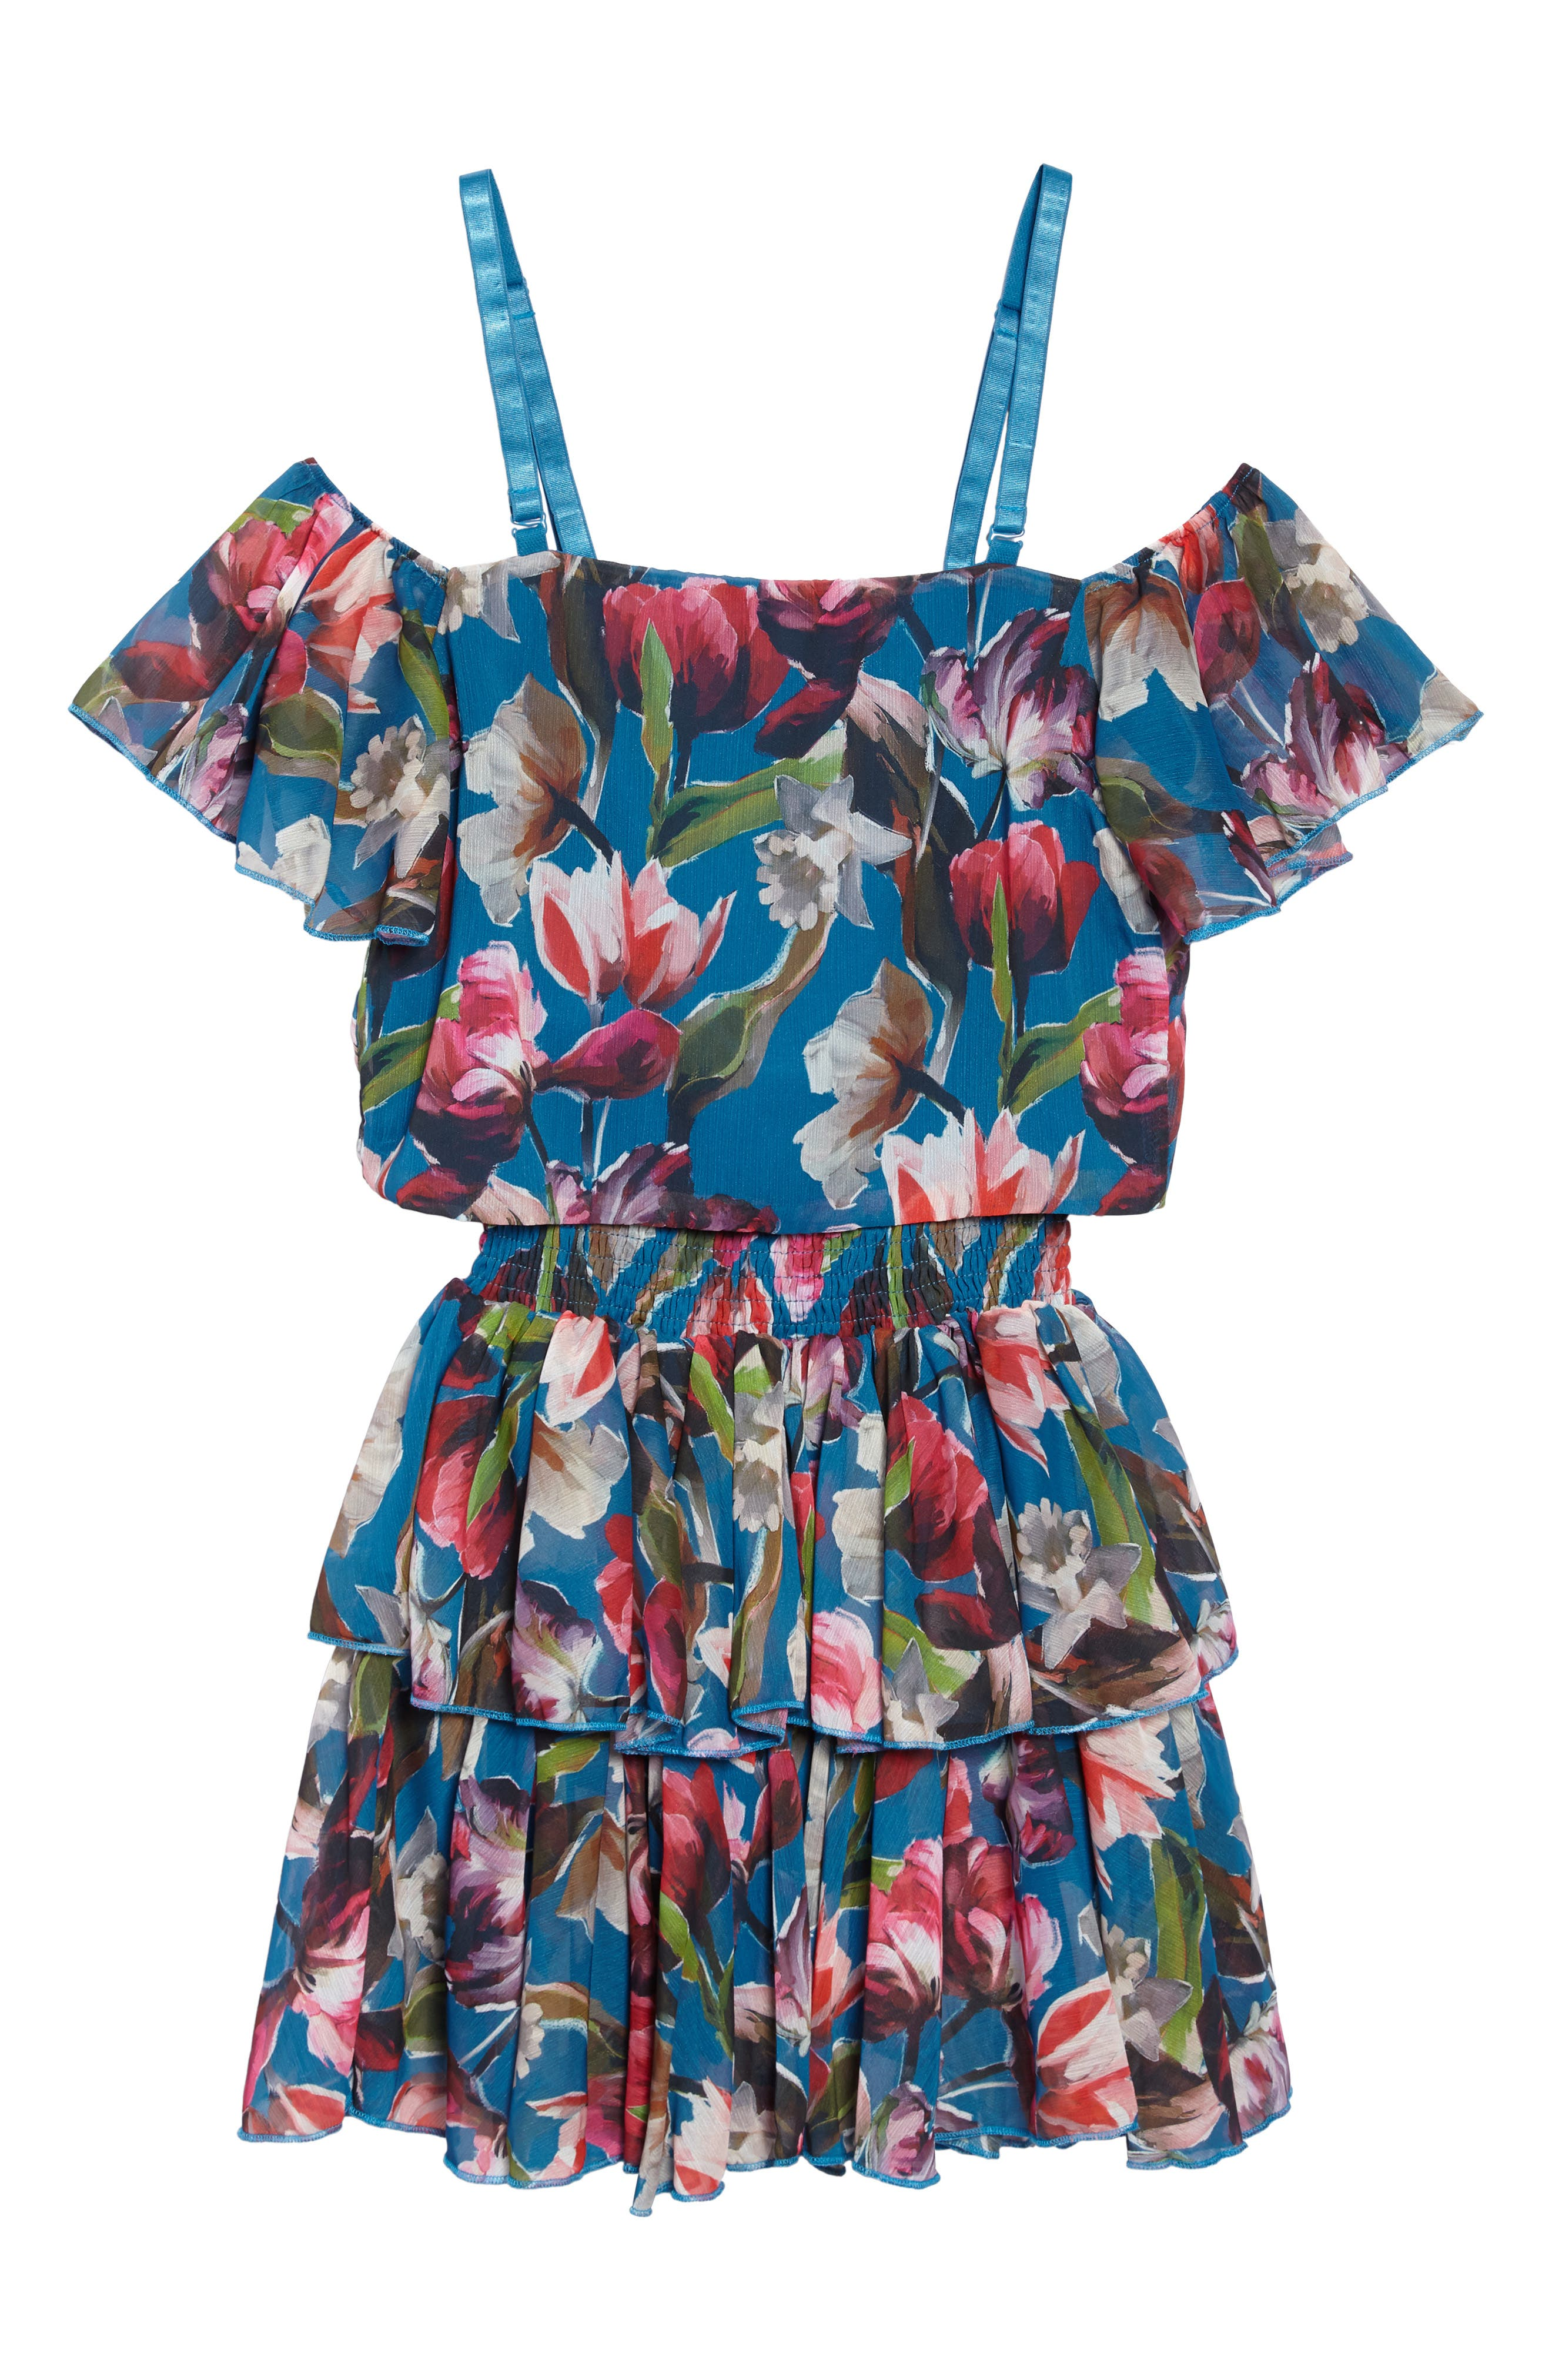 Alternate Image 1 Selected - Miss Behave Josephine Two-Piece Ruffle Dress (Big Girls)